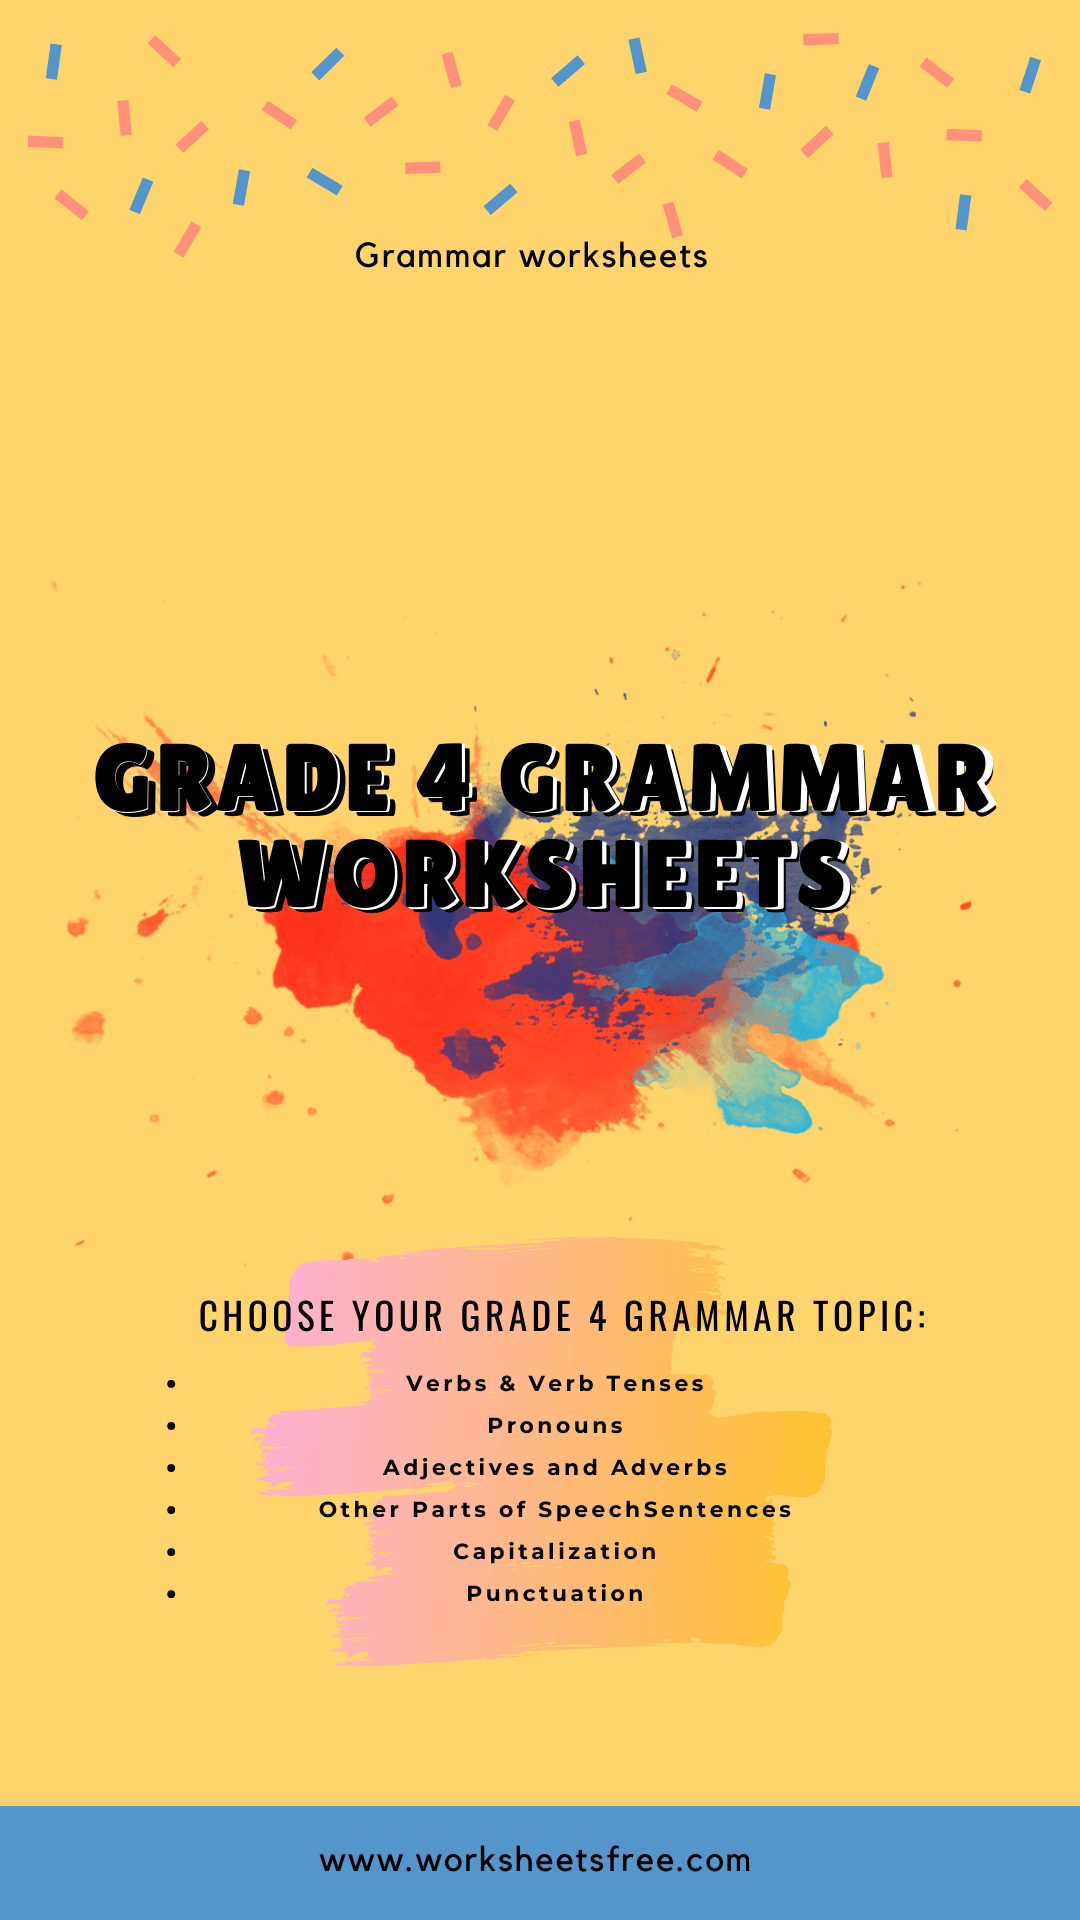 Grade 4 Grammar Worksheets : Grammar Worksheets   Worksheets Free [ 1920 x 1080 Pixel ]